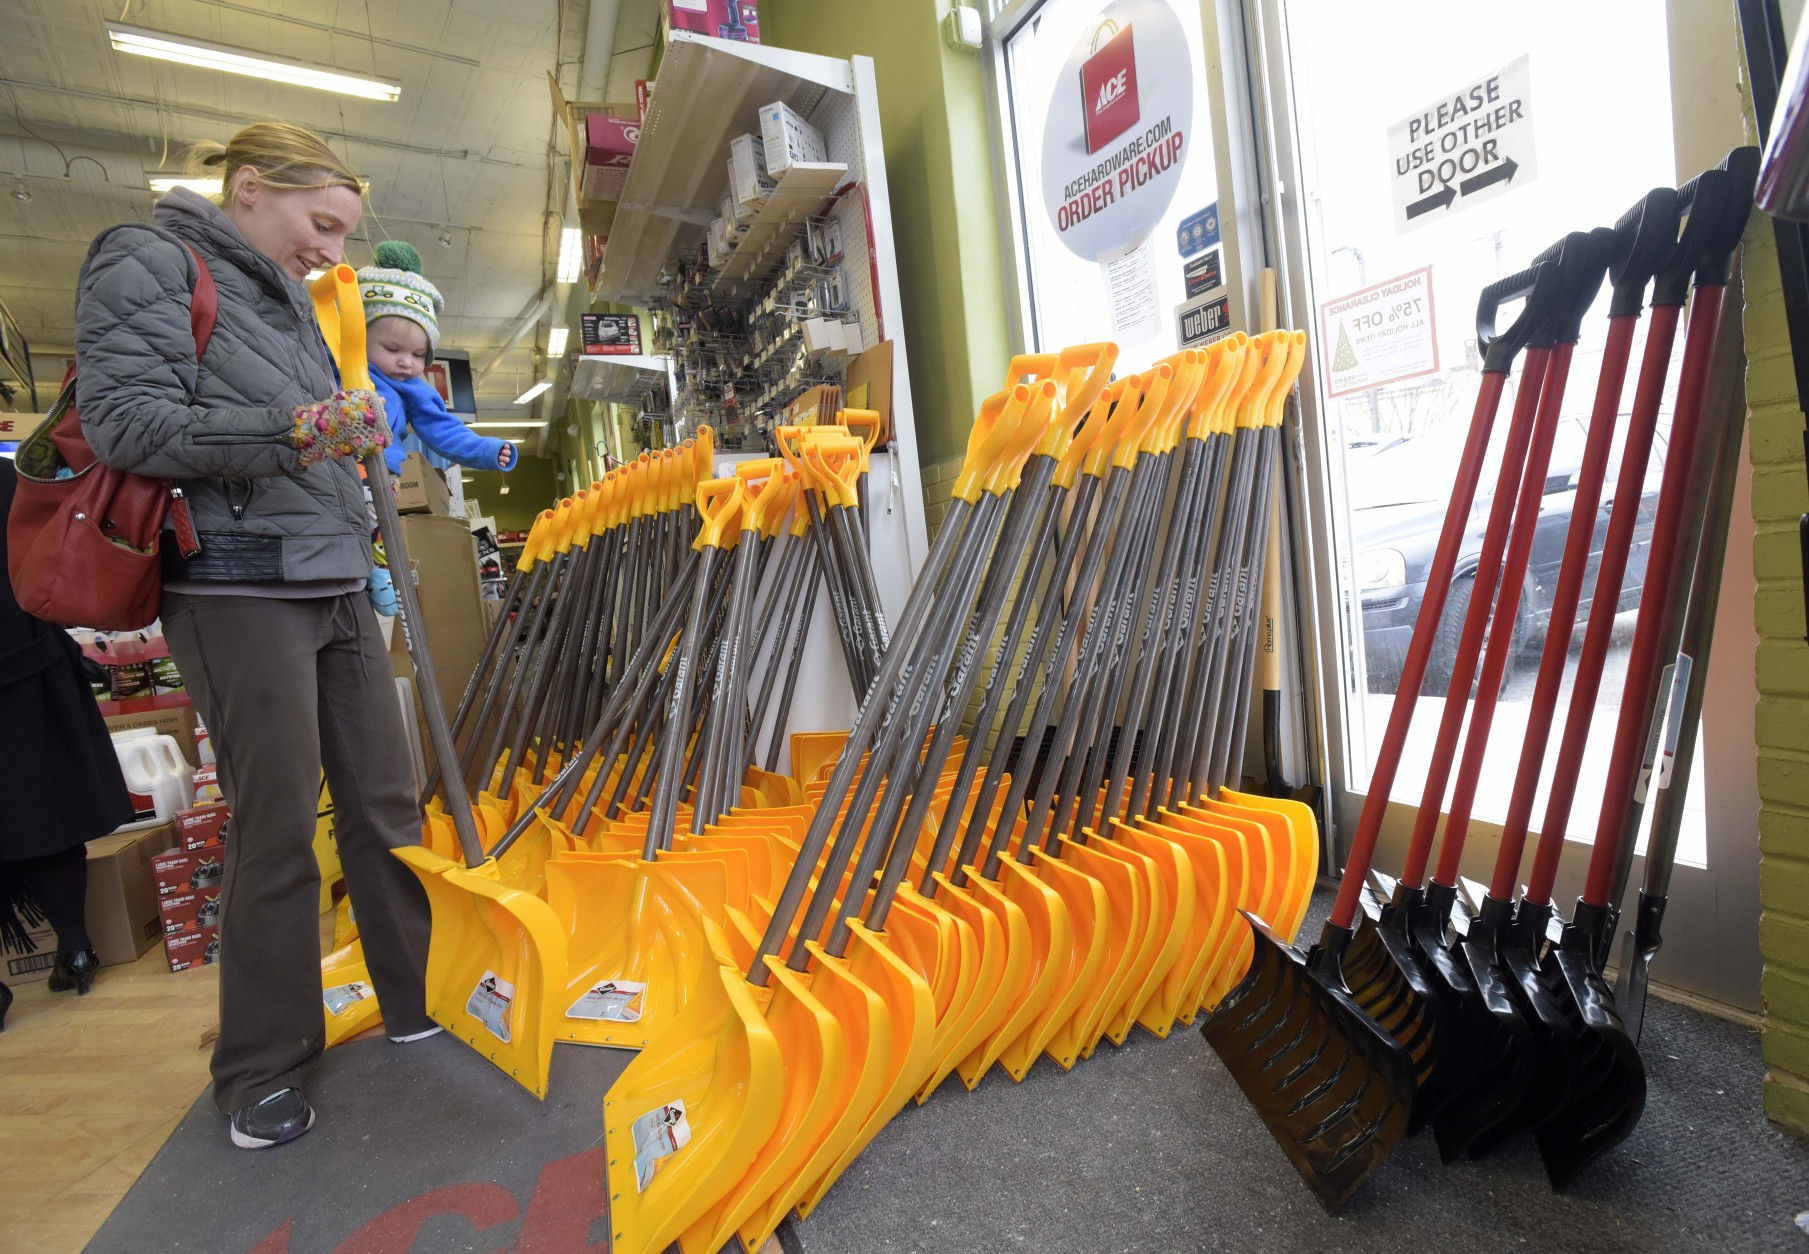 Bethany Gallagher, of Baltimore, shops for a snow shovel with her 18-month-old son, Jack, at the Waverly Ace Hardware store, in Baltimore, Friday, Jan. 22, 2016. The northern mid-Atlantic region, including Baltimore, Washington and Philadelphia, is preparing for a weekend snowstorm that is now forecast to reach blizzard conditions. (AP Photo/Steve Ruark)